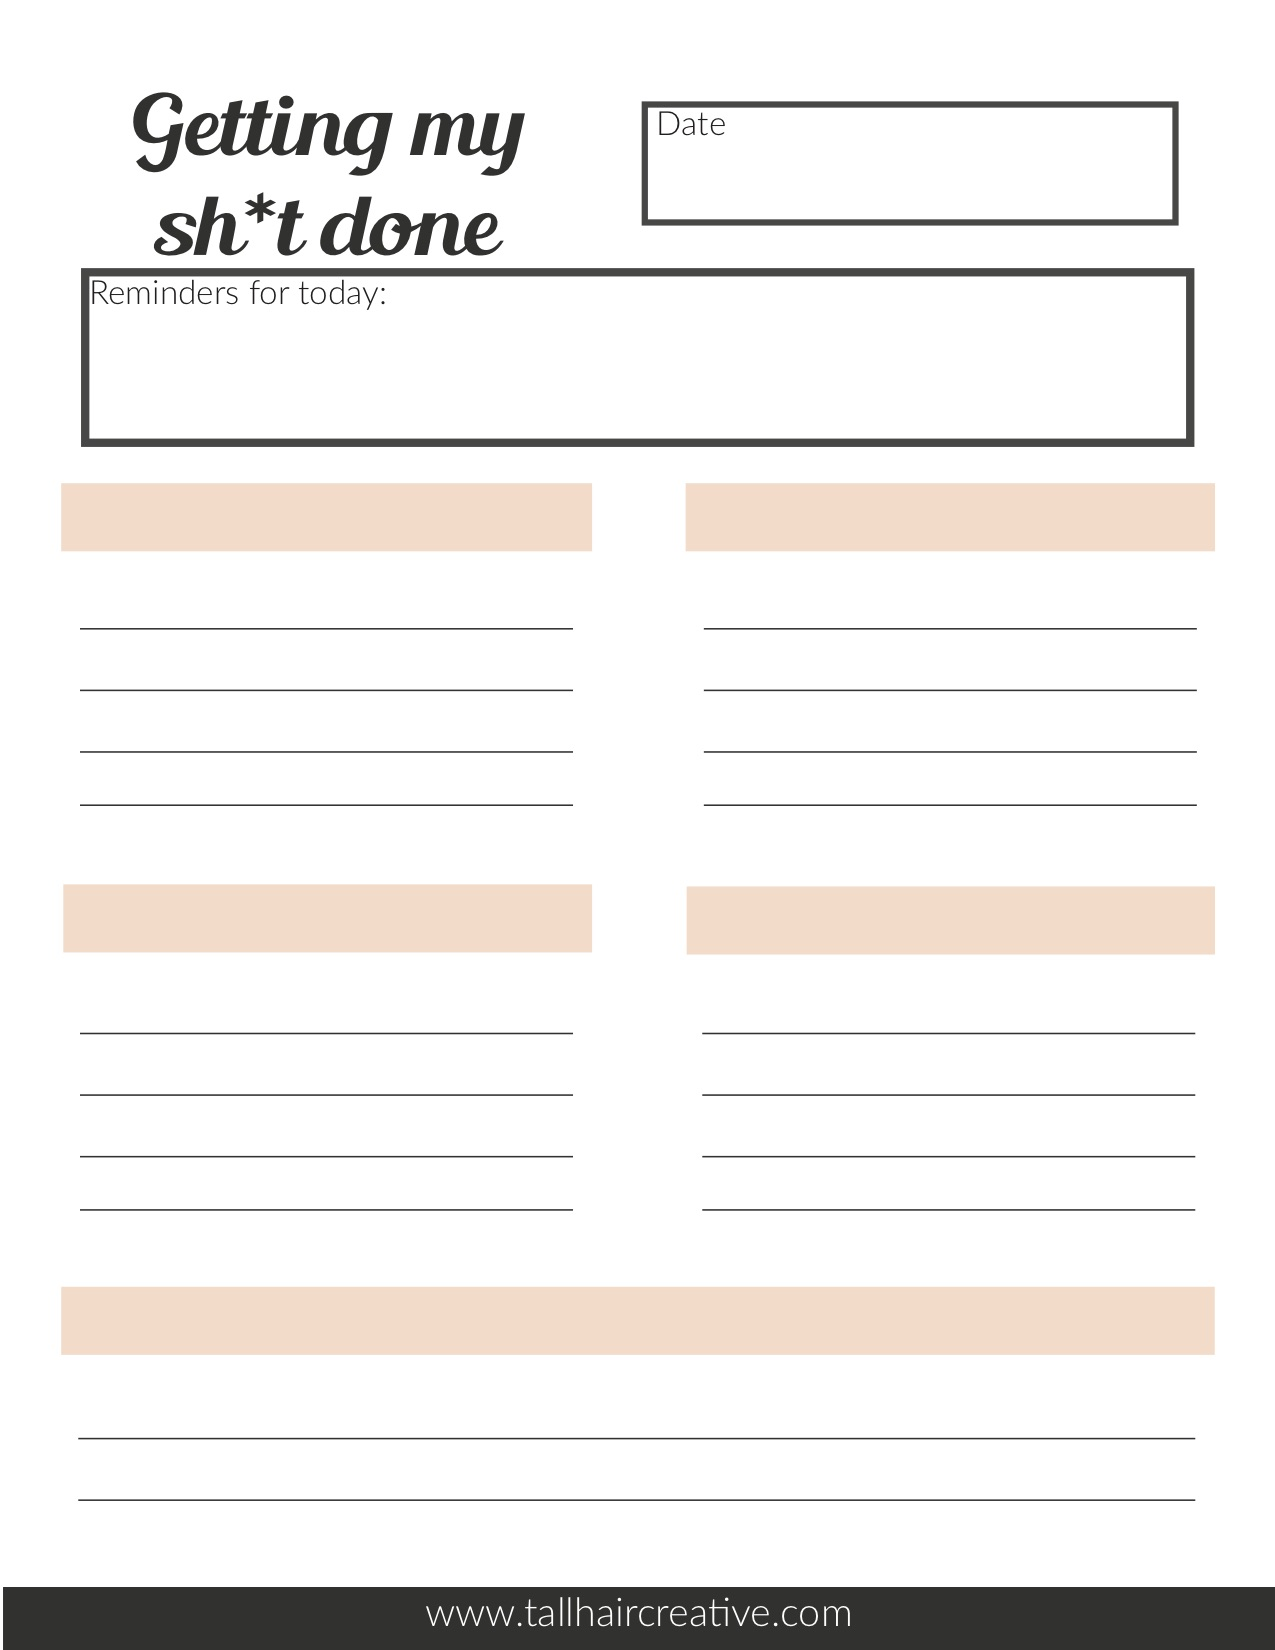 things to do list planner template.jpg